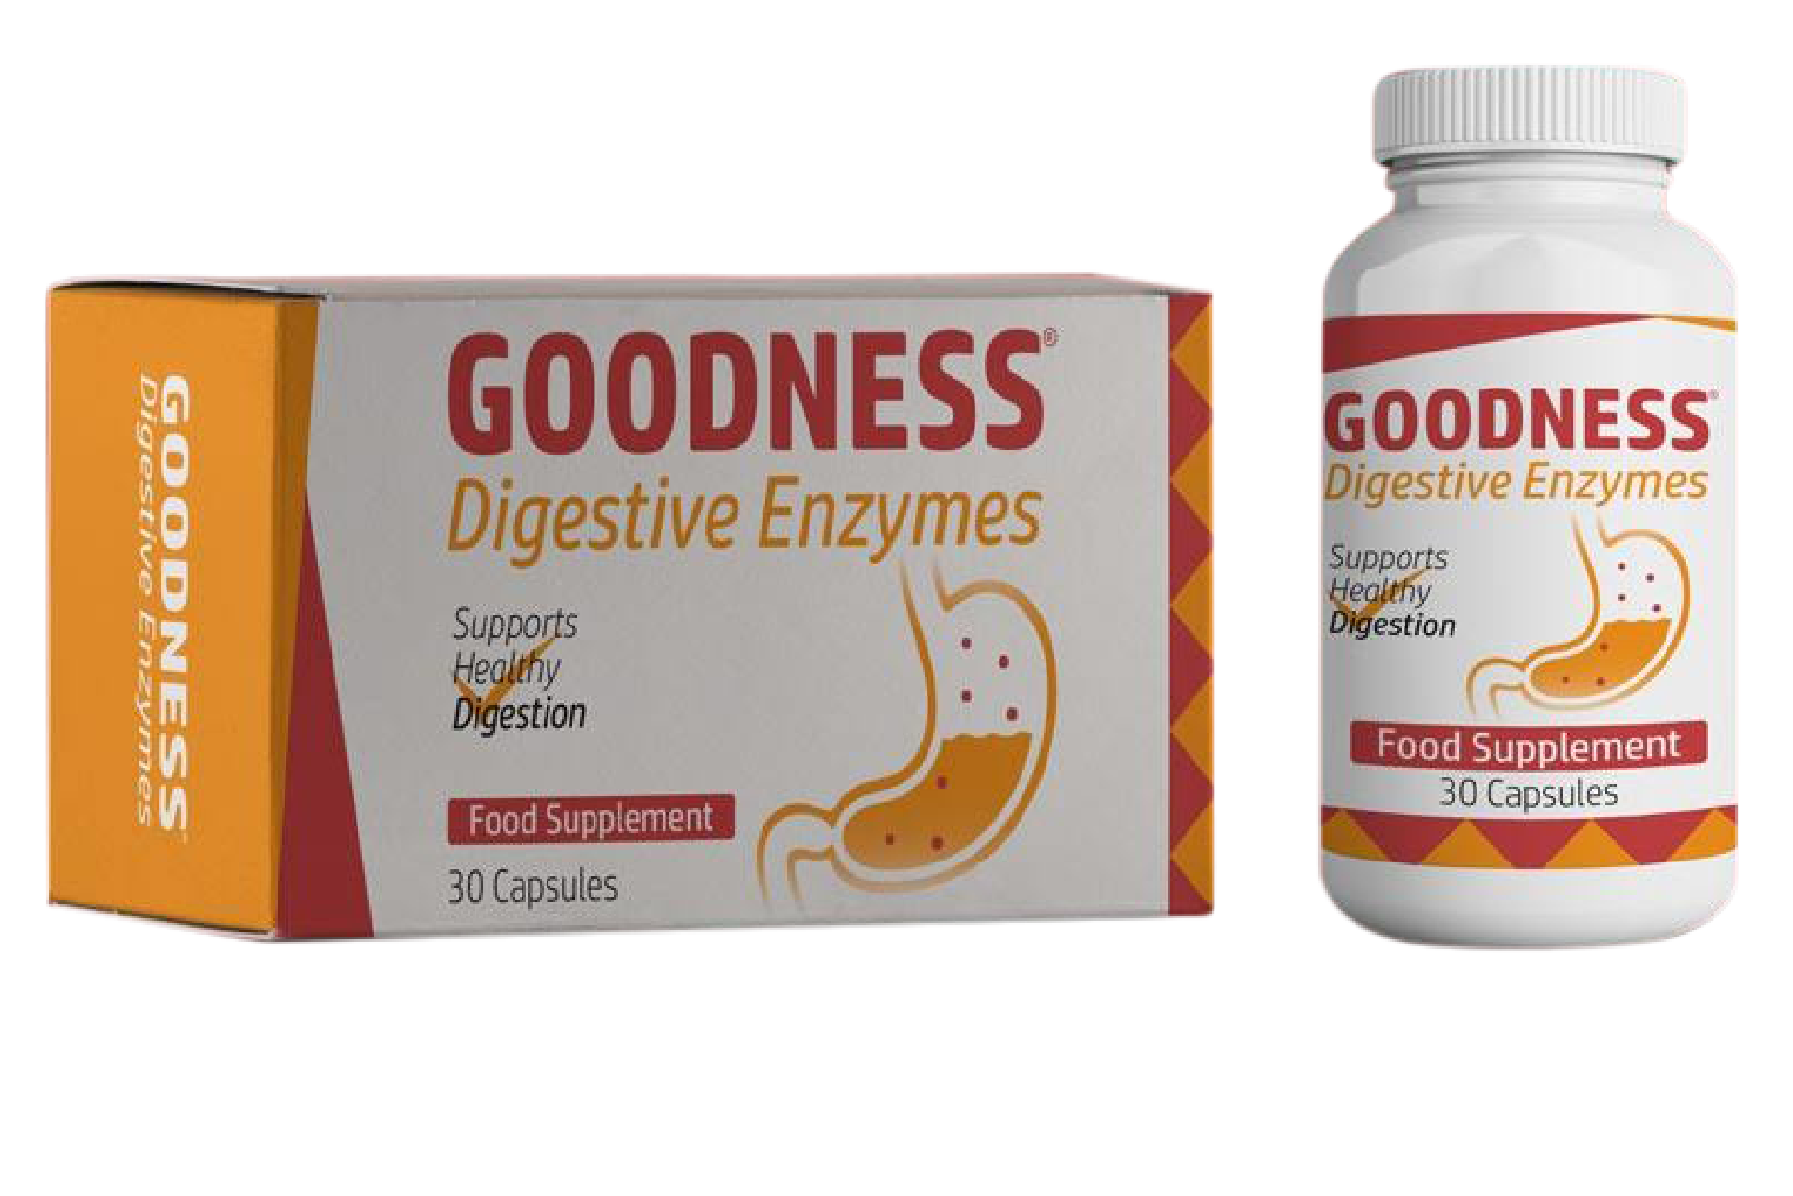 goodness digestive enzymes